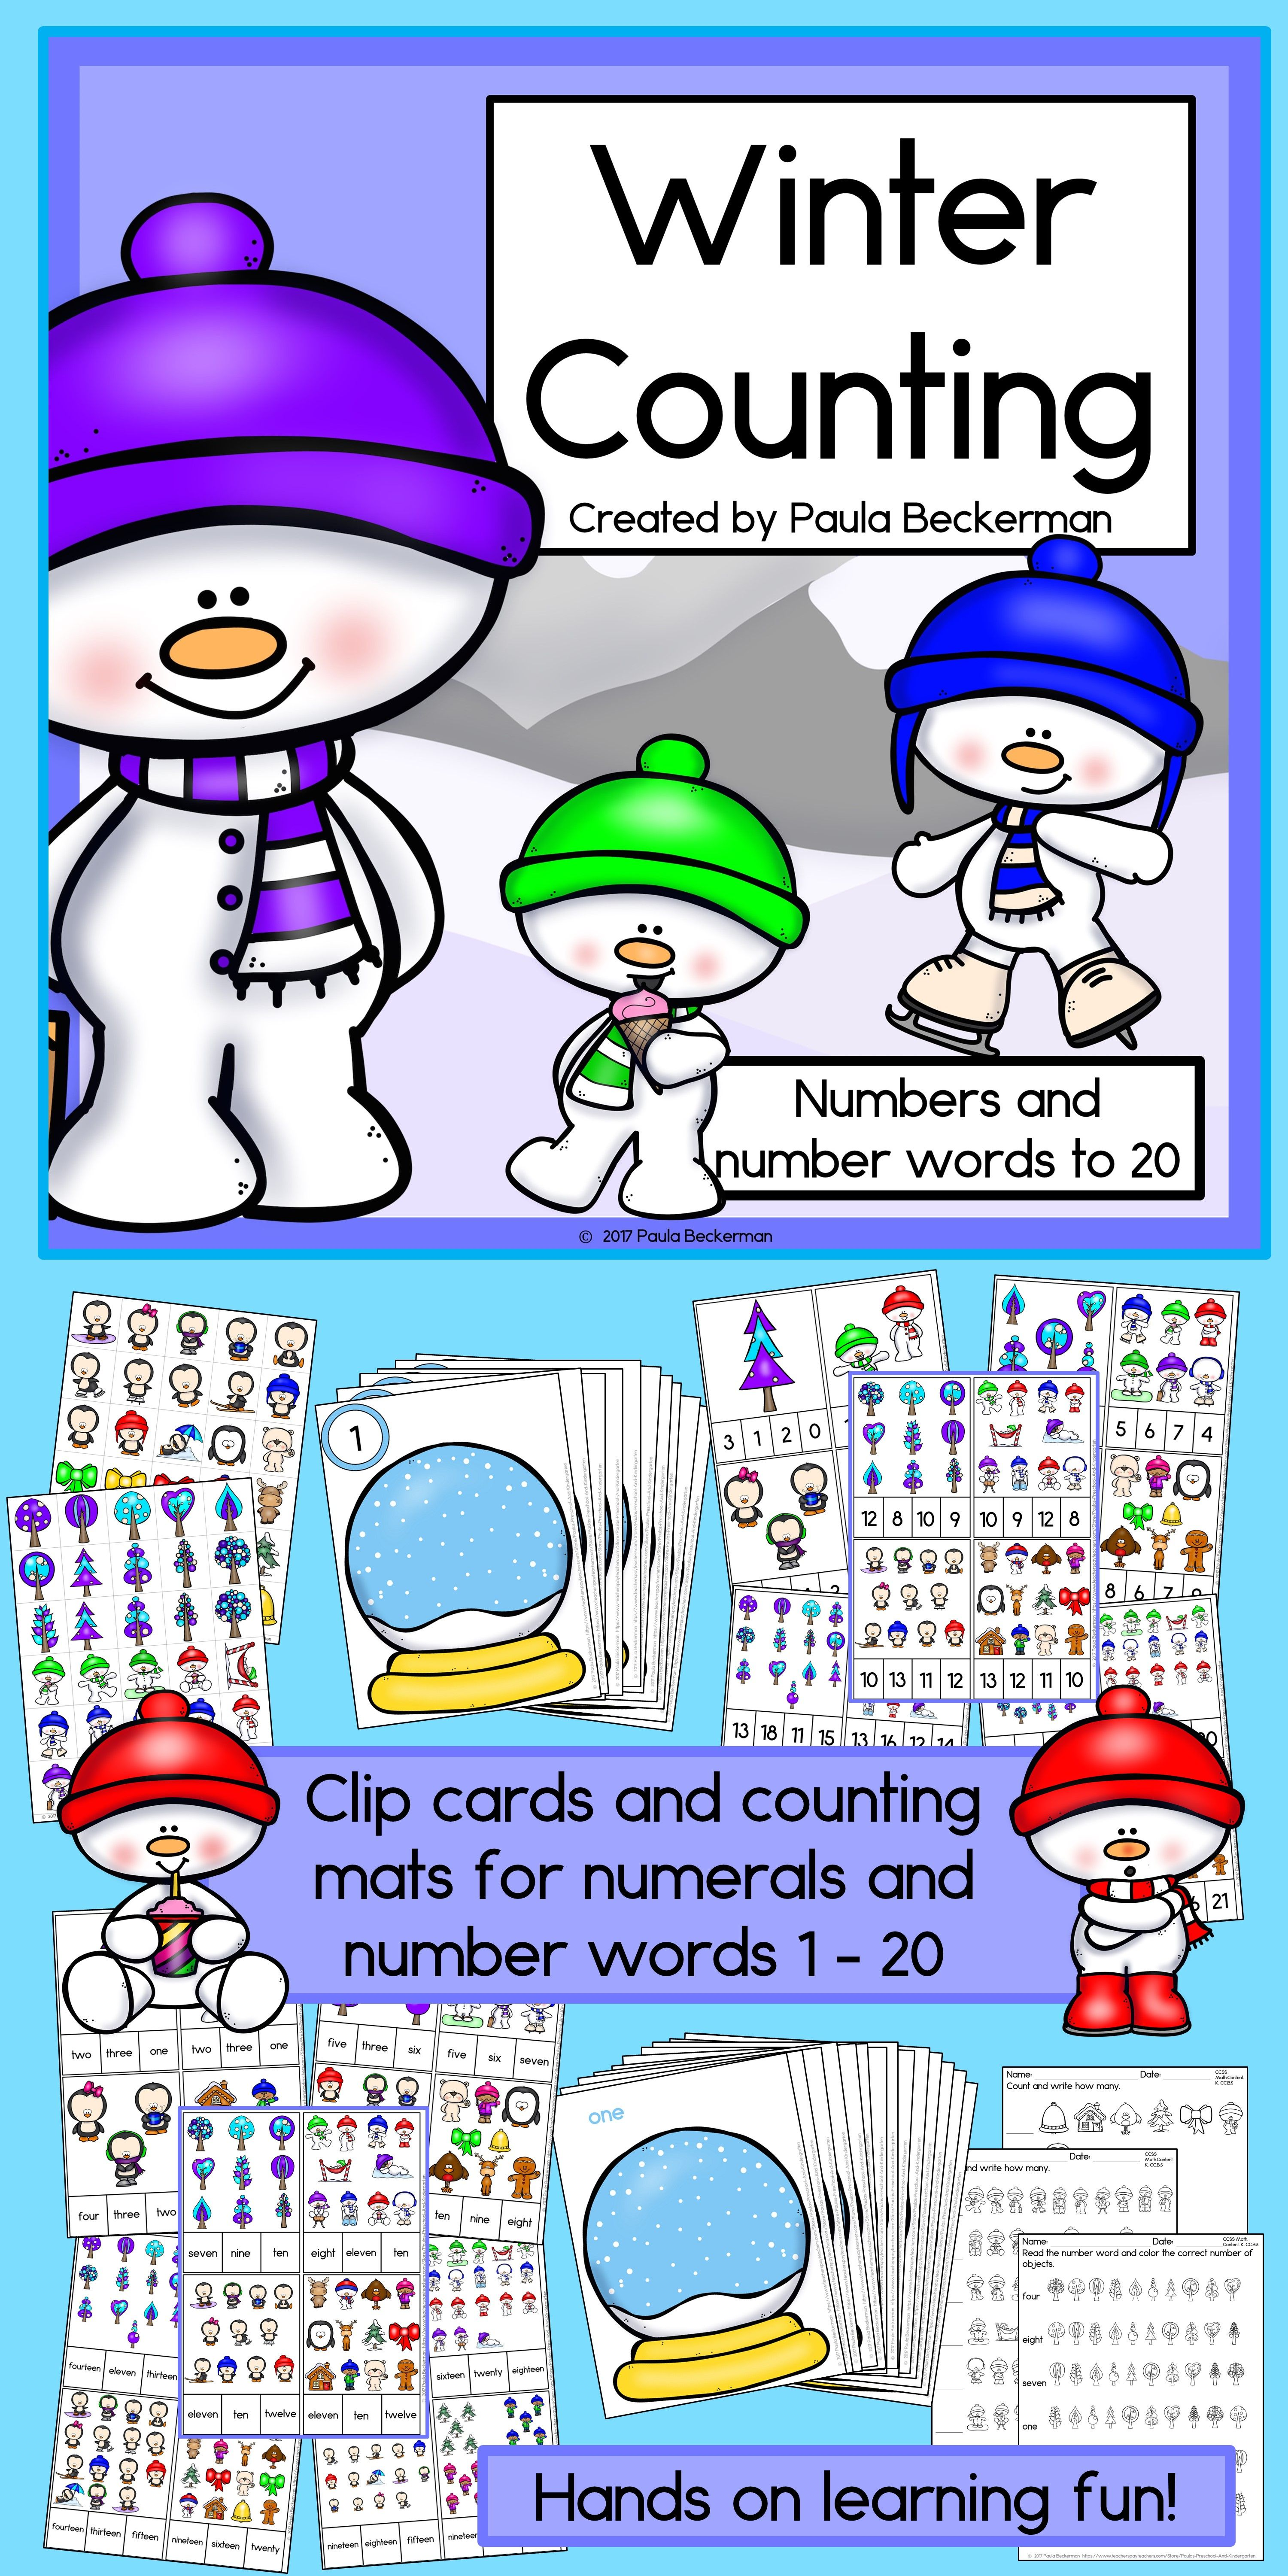 Winter Counting Numerals And Number Words 1 To 20